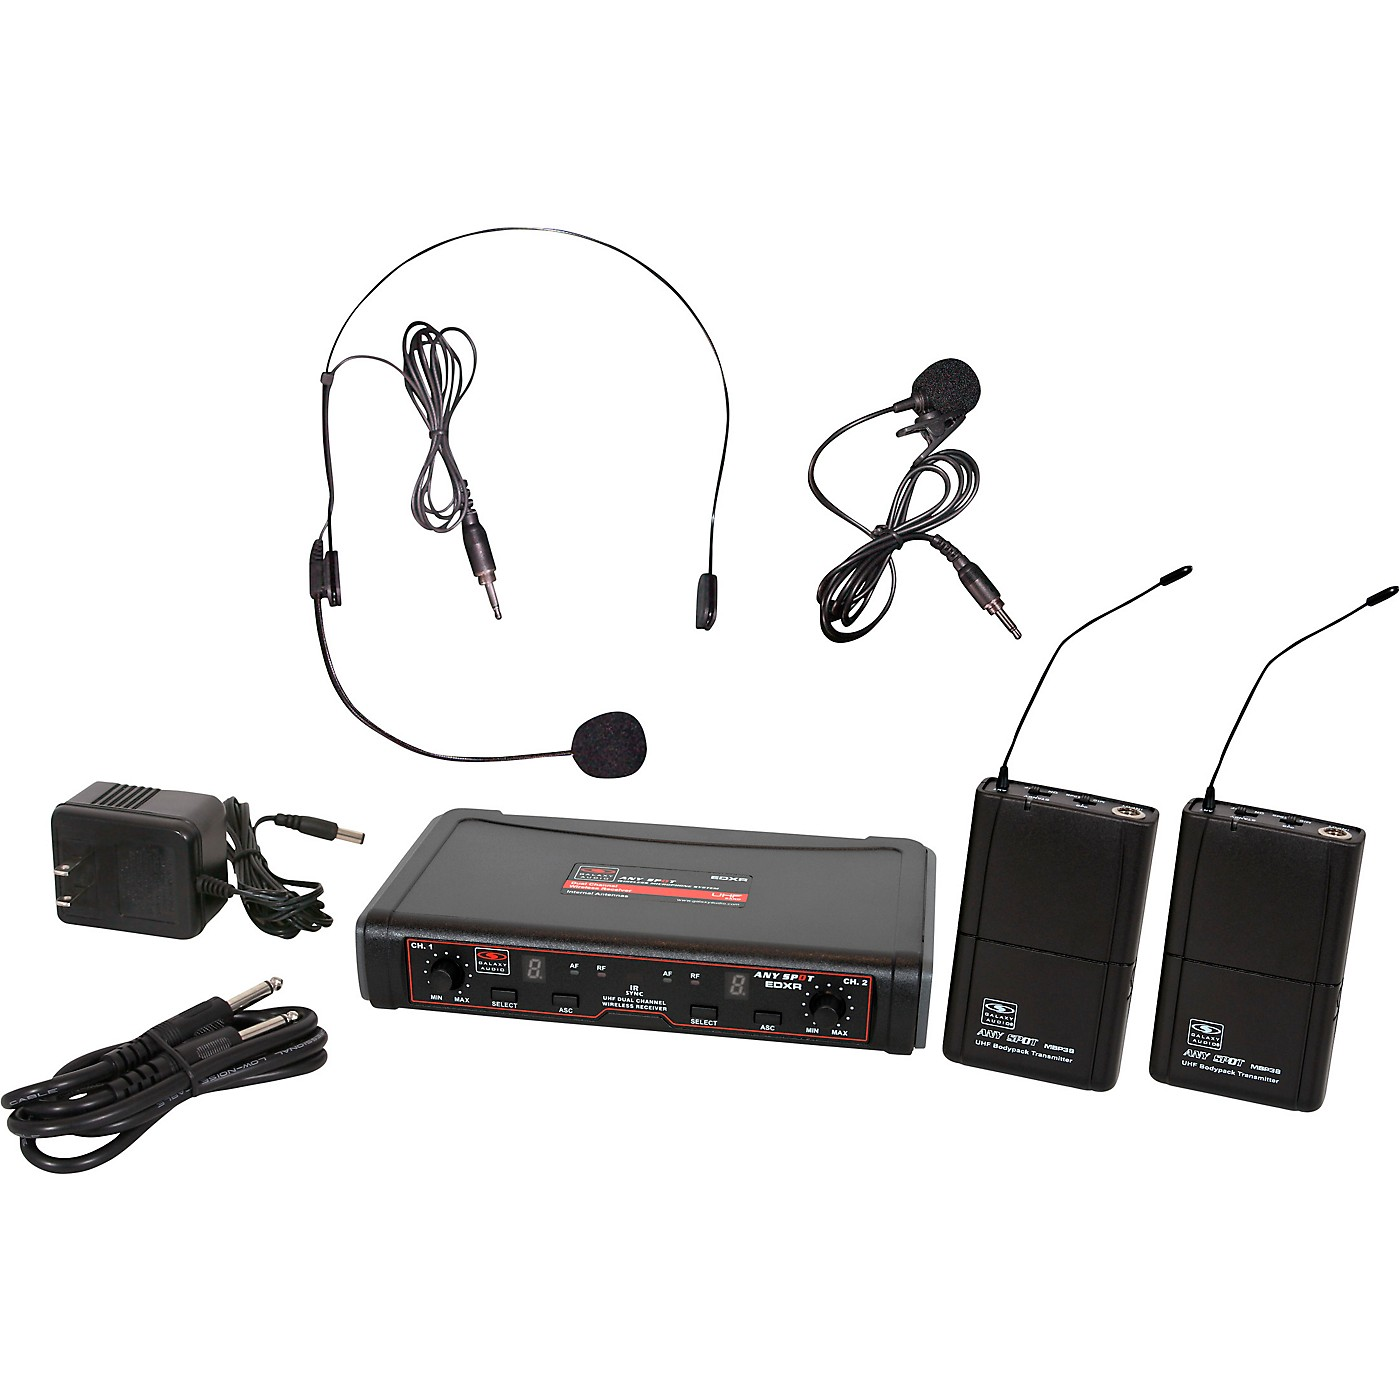 Galaxy Audio EDXR/38SV Dual-Channel Wireless Headset and Lavalier System thumbnail